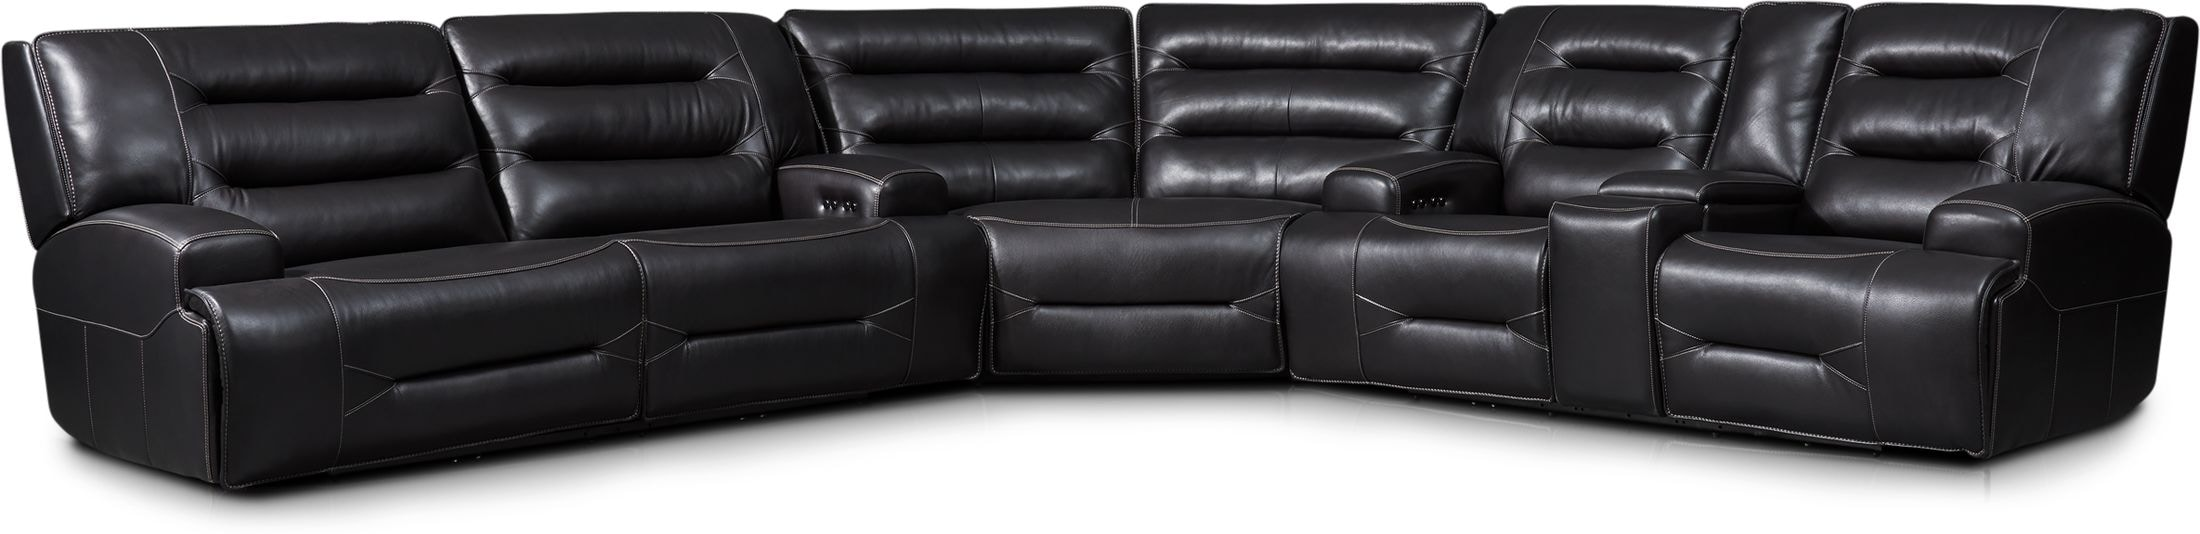 preston 3 piece dual power reclining sectional with 4 reclining seats black